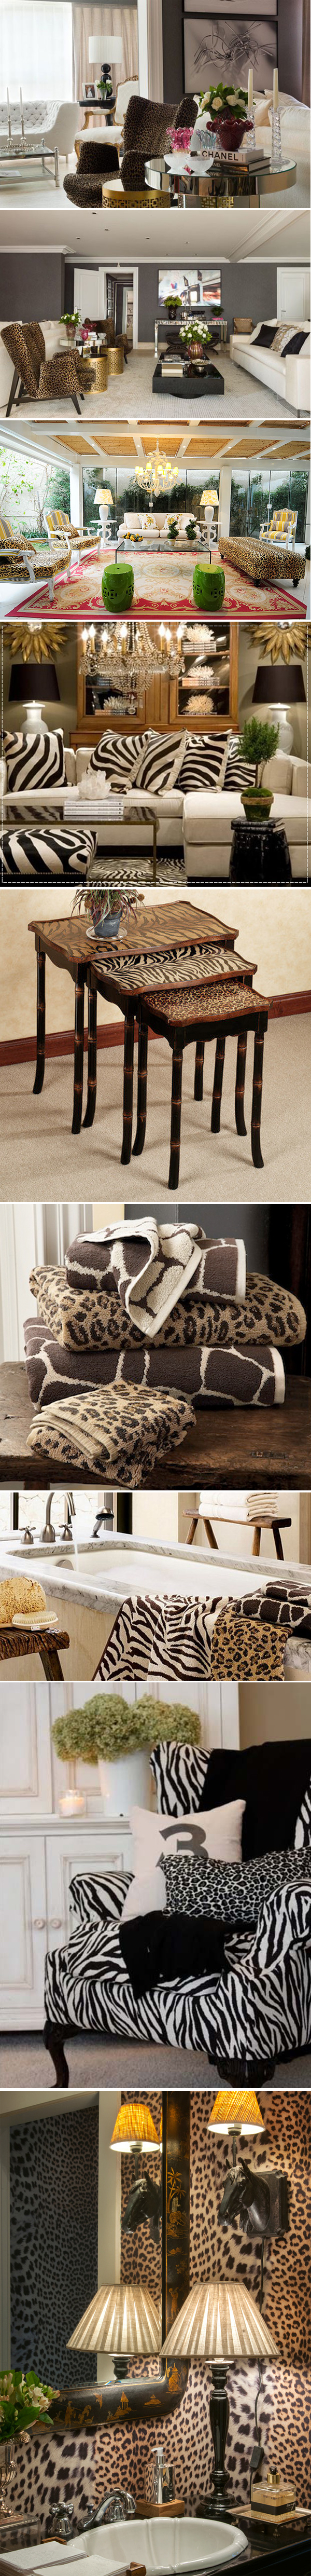 Post Animal Print Paty